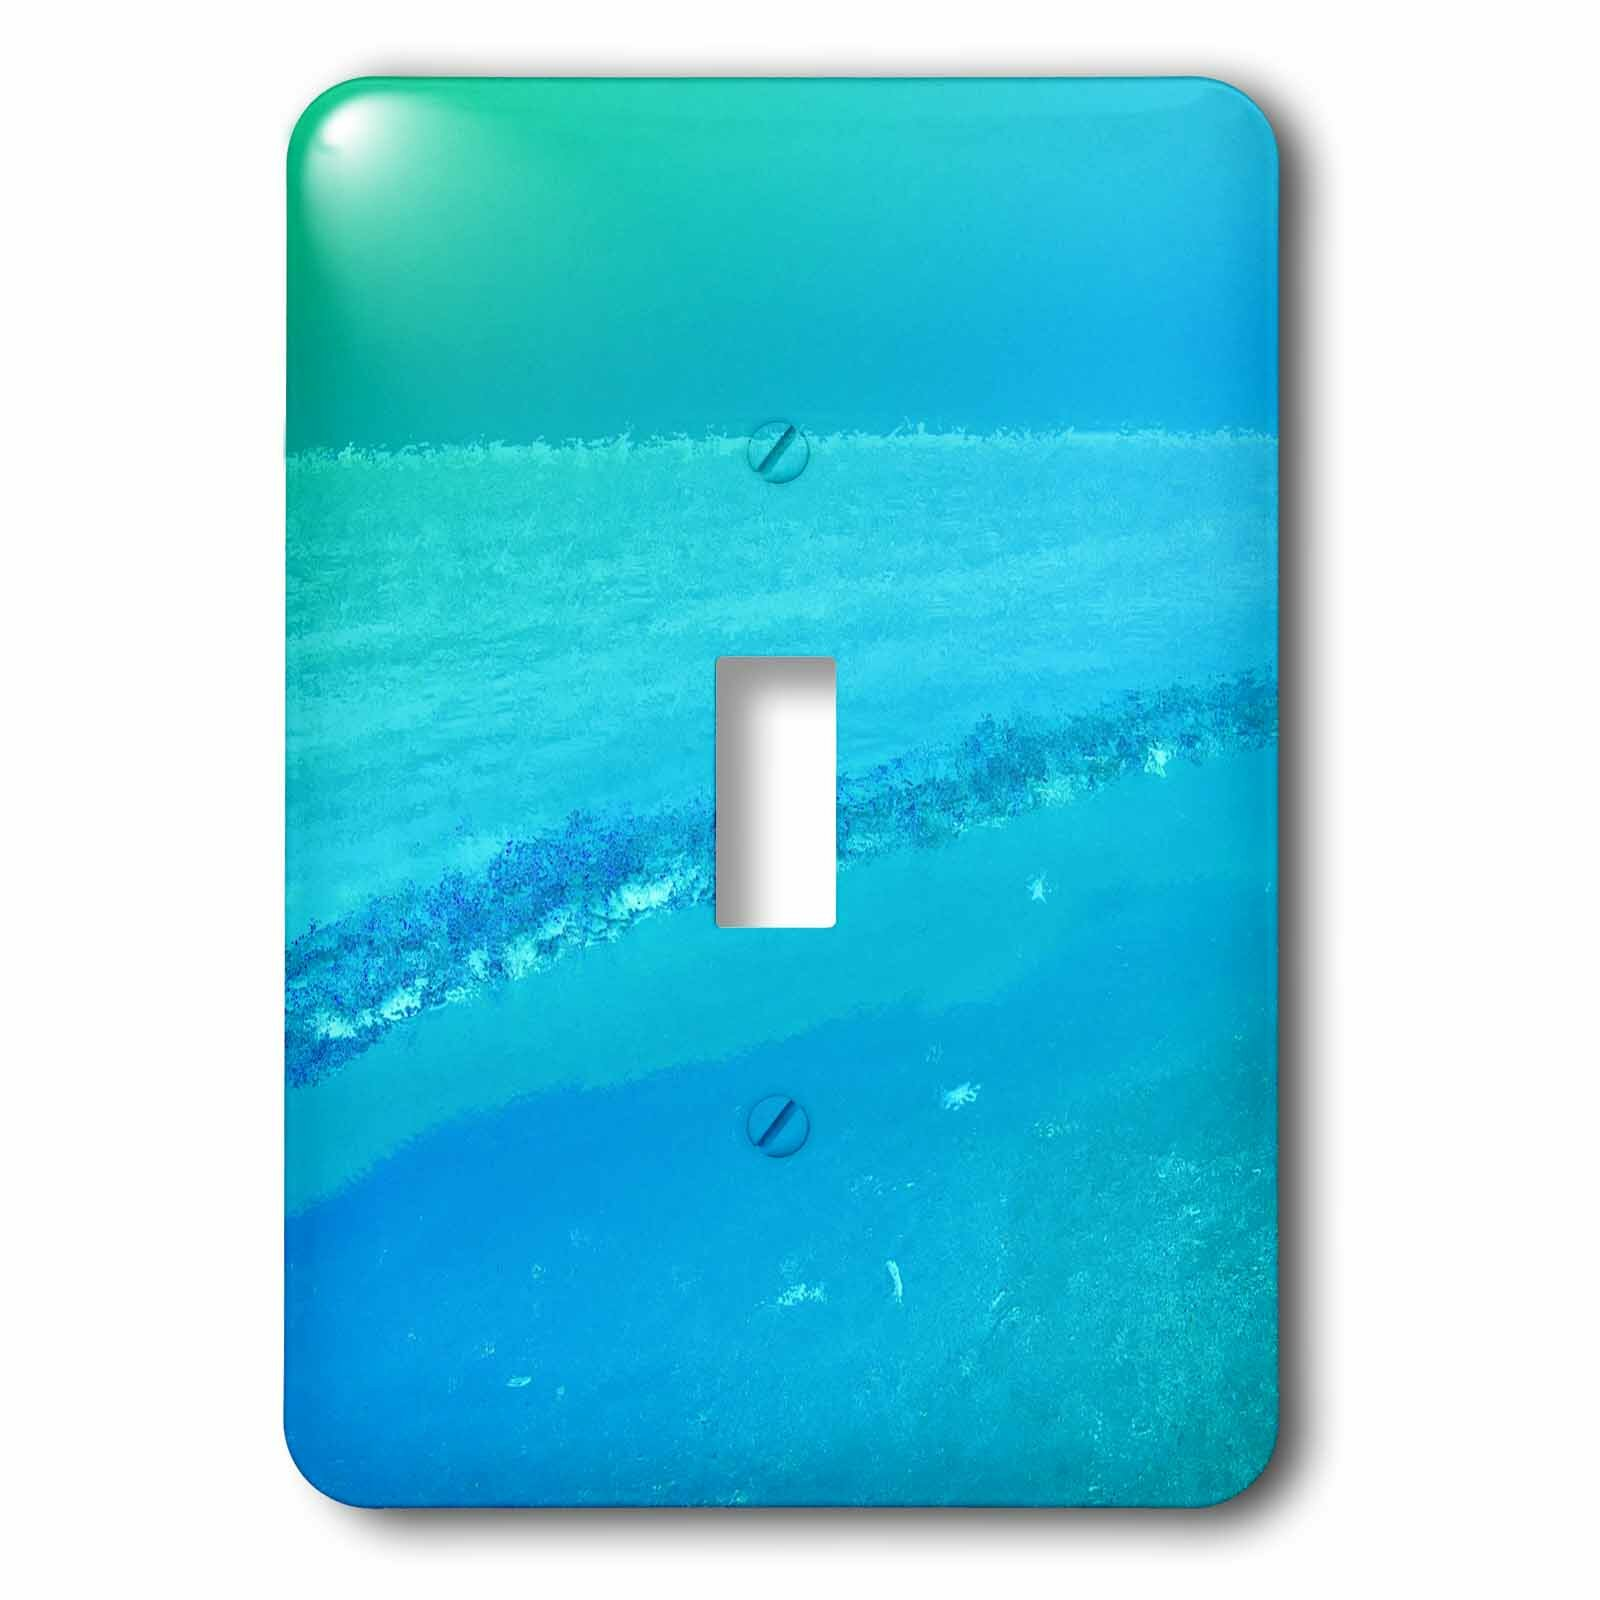 3drose Ocean And Sky 1 Gang Toggle Light Switch Wall Plate Wayfair